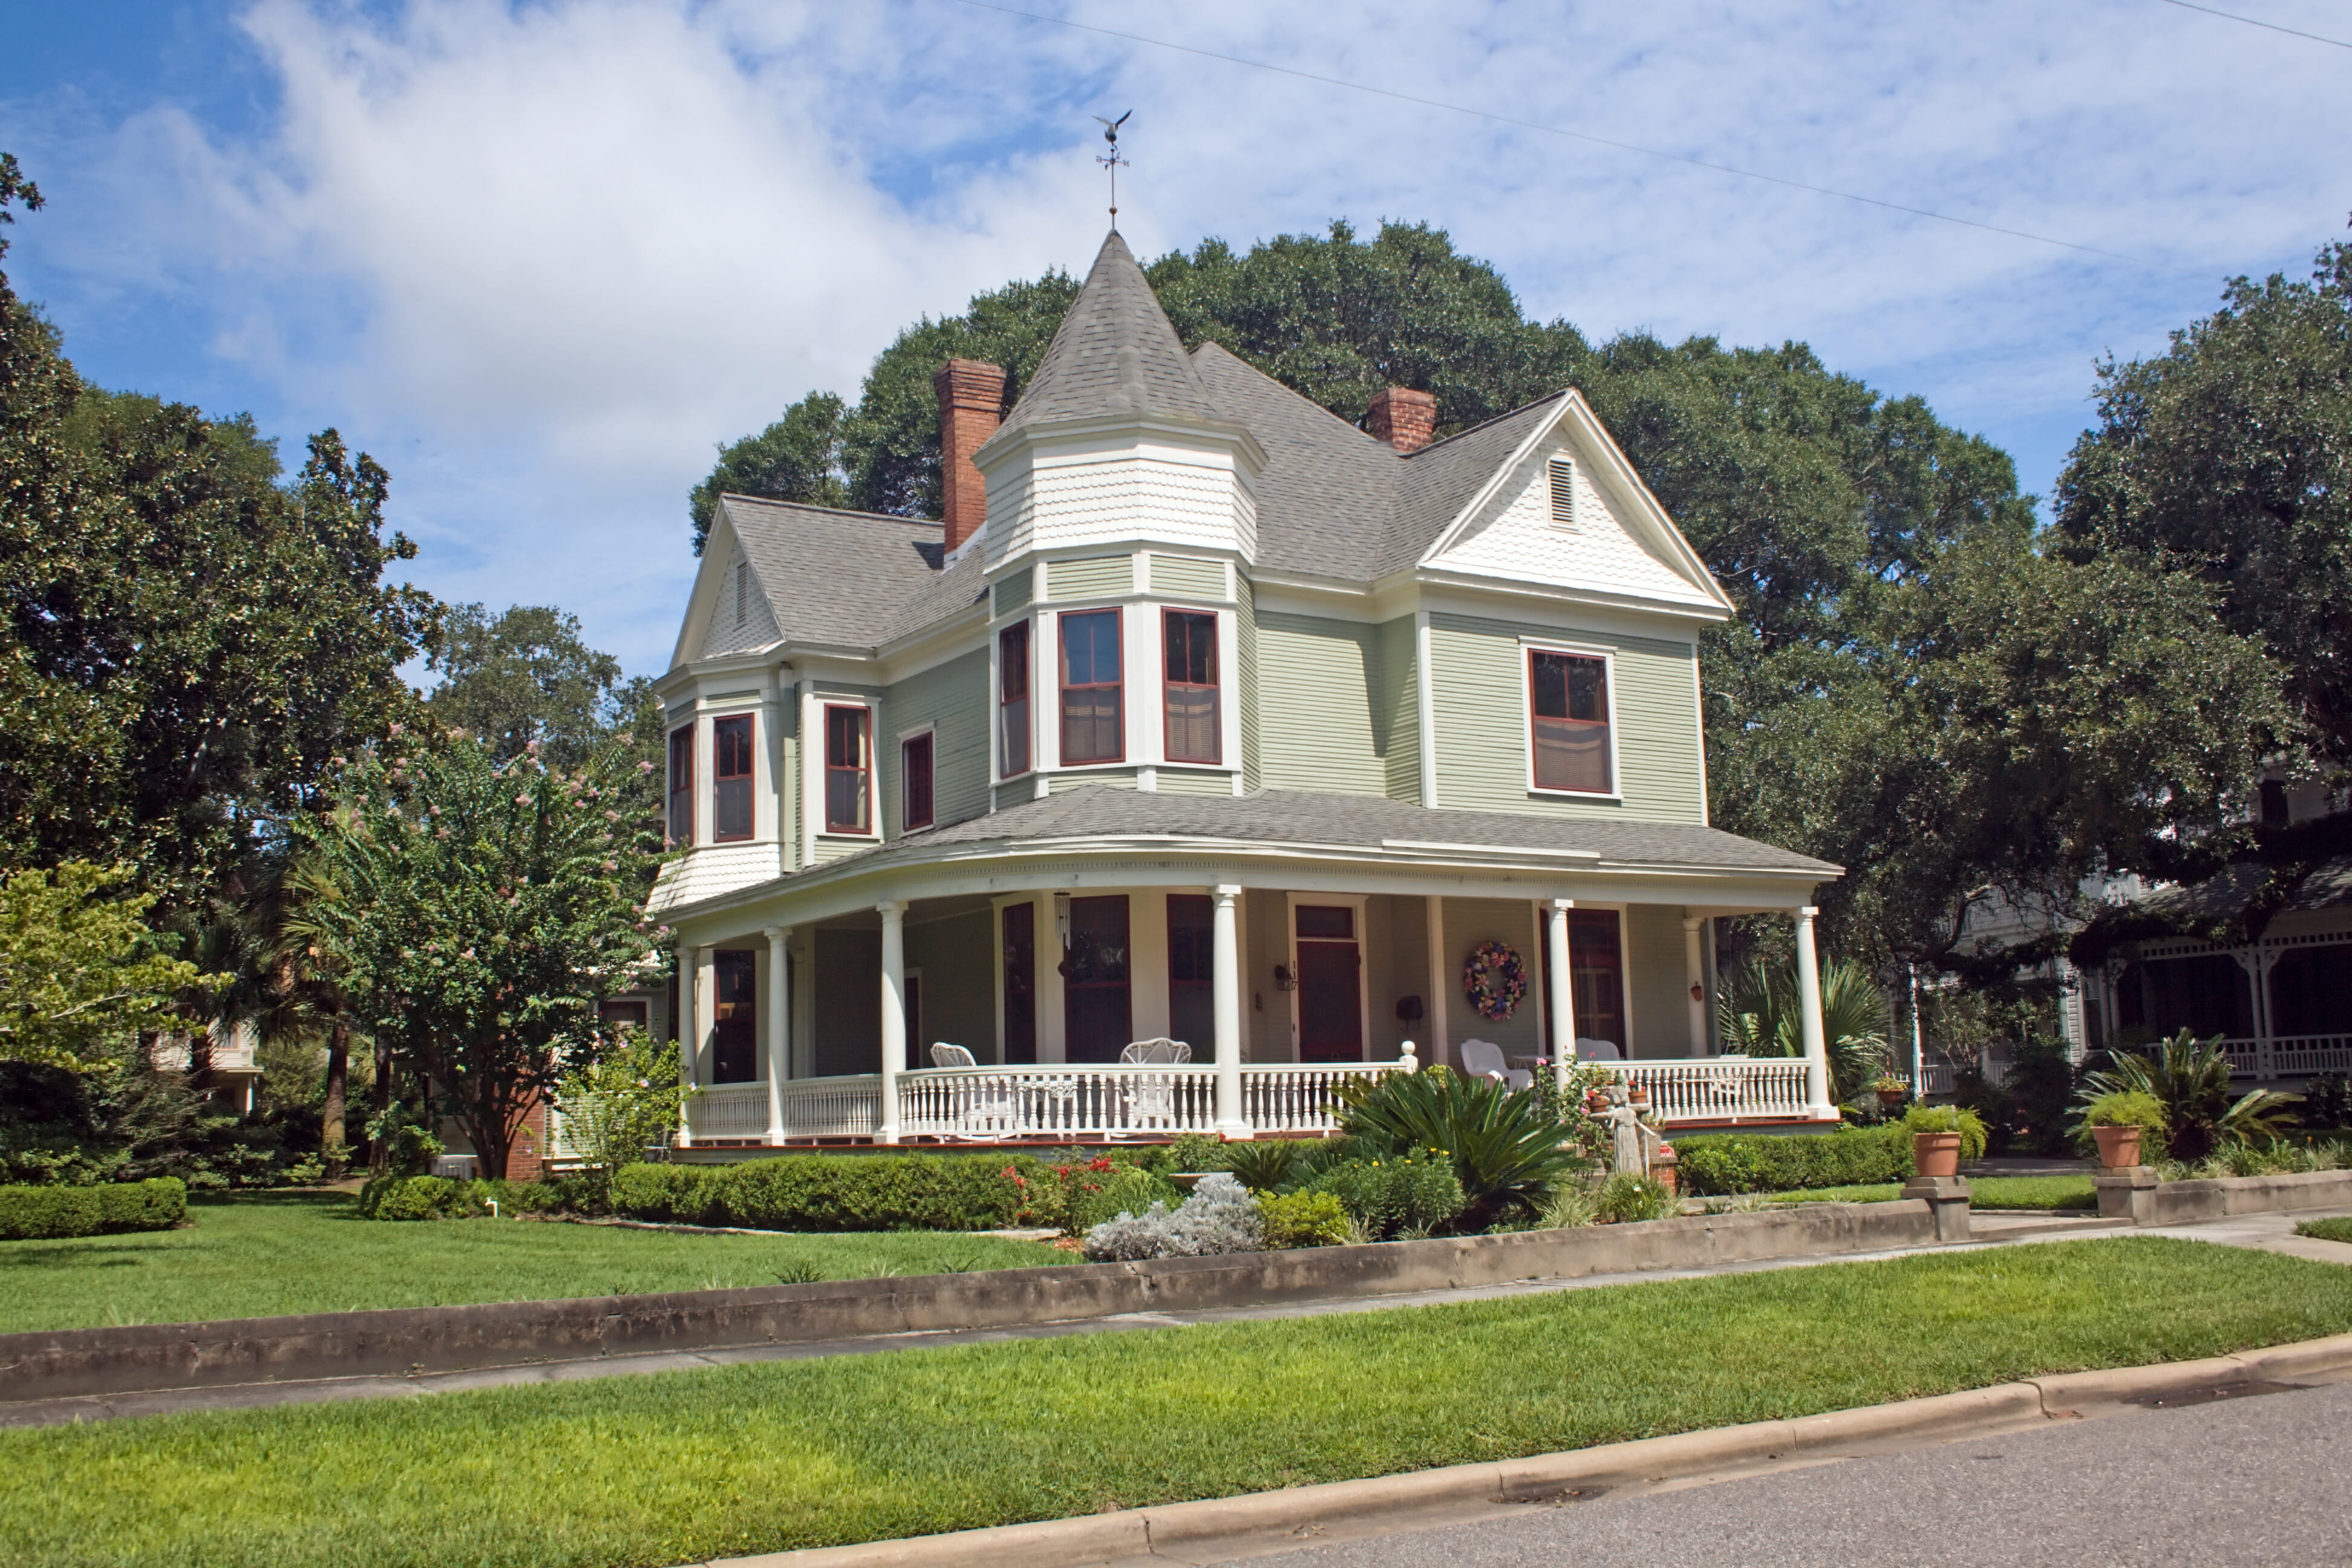 Old Victorian house in good condition